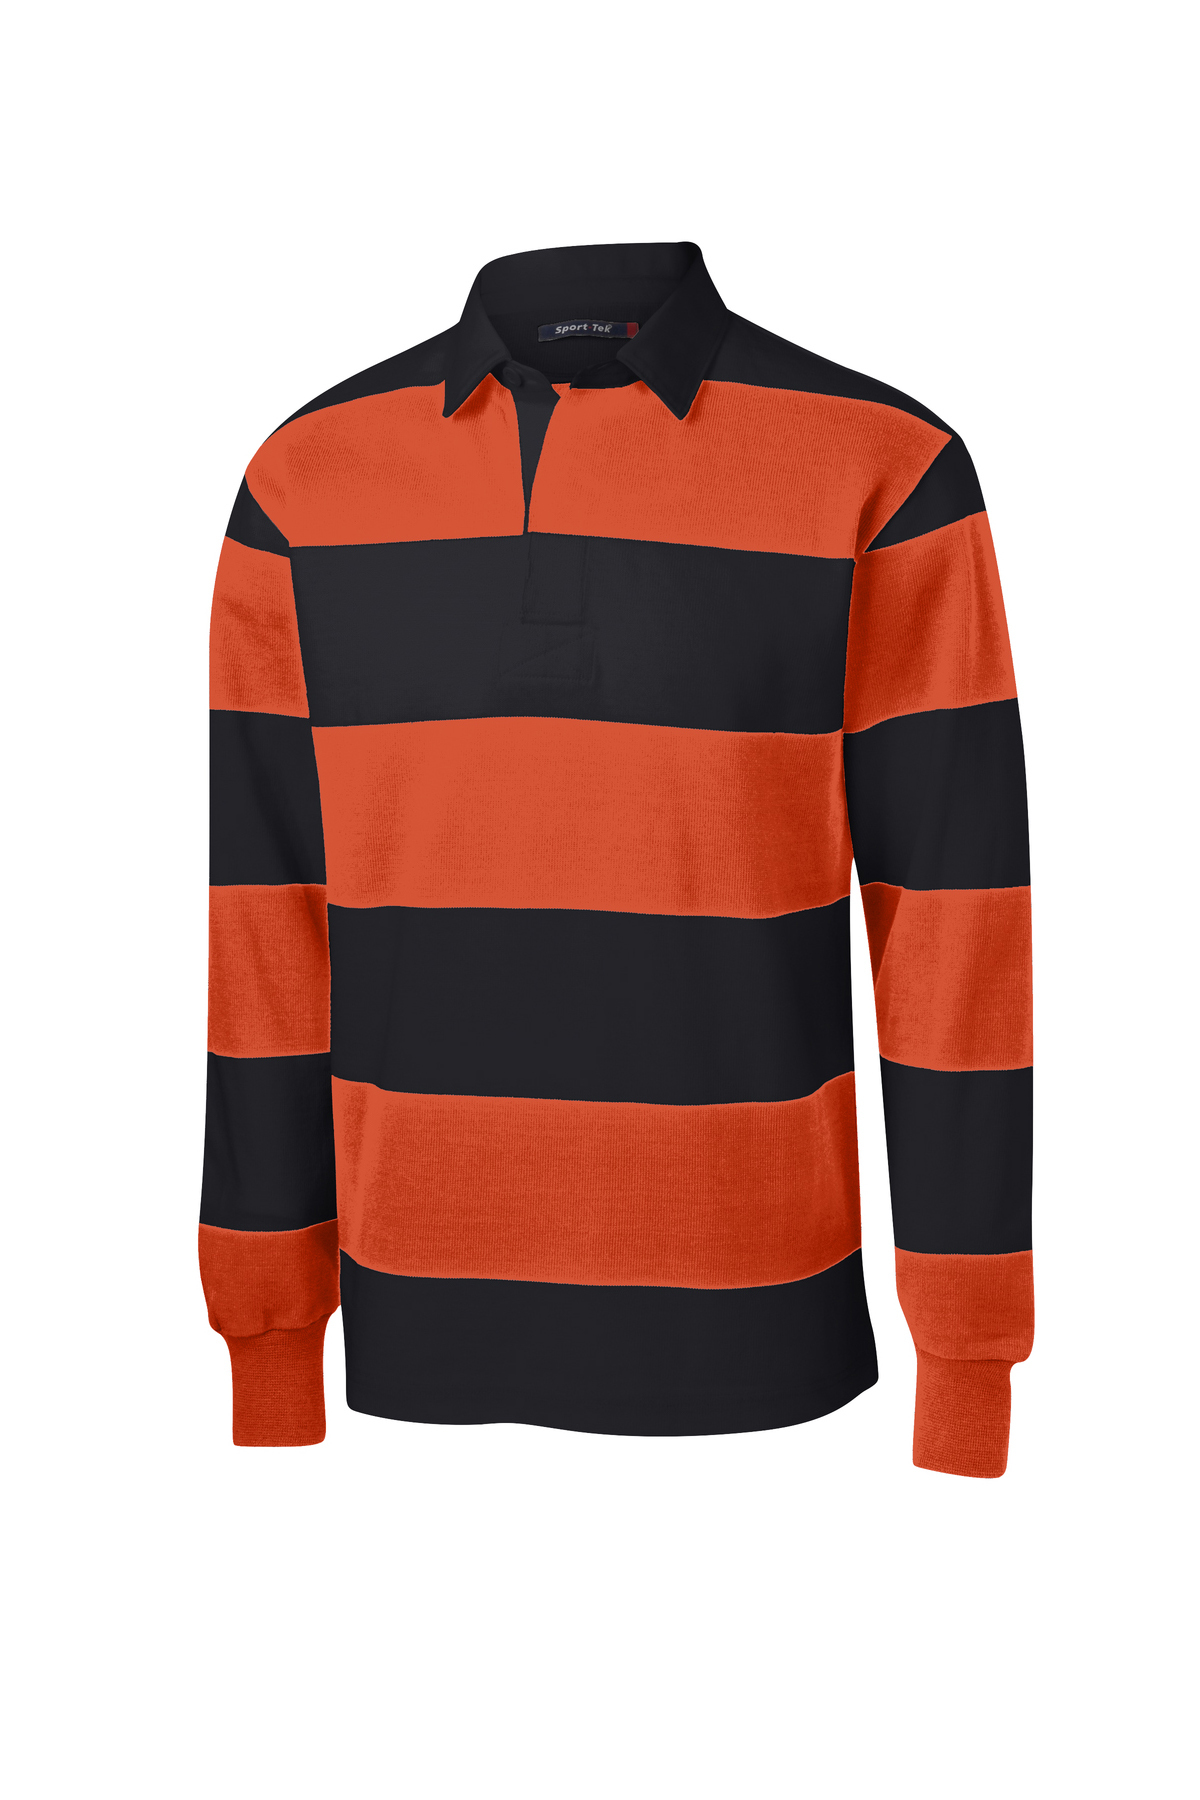 1ab33a9ef24 ... Sport-Tek® Long Sleeve Rugby Polo. A maximum of 8 logos have been  uploaded. Please remove a logo from My Logos to continue